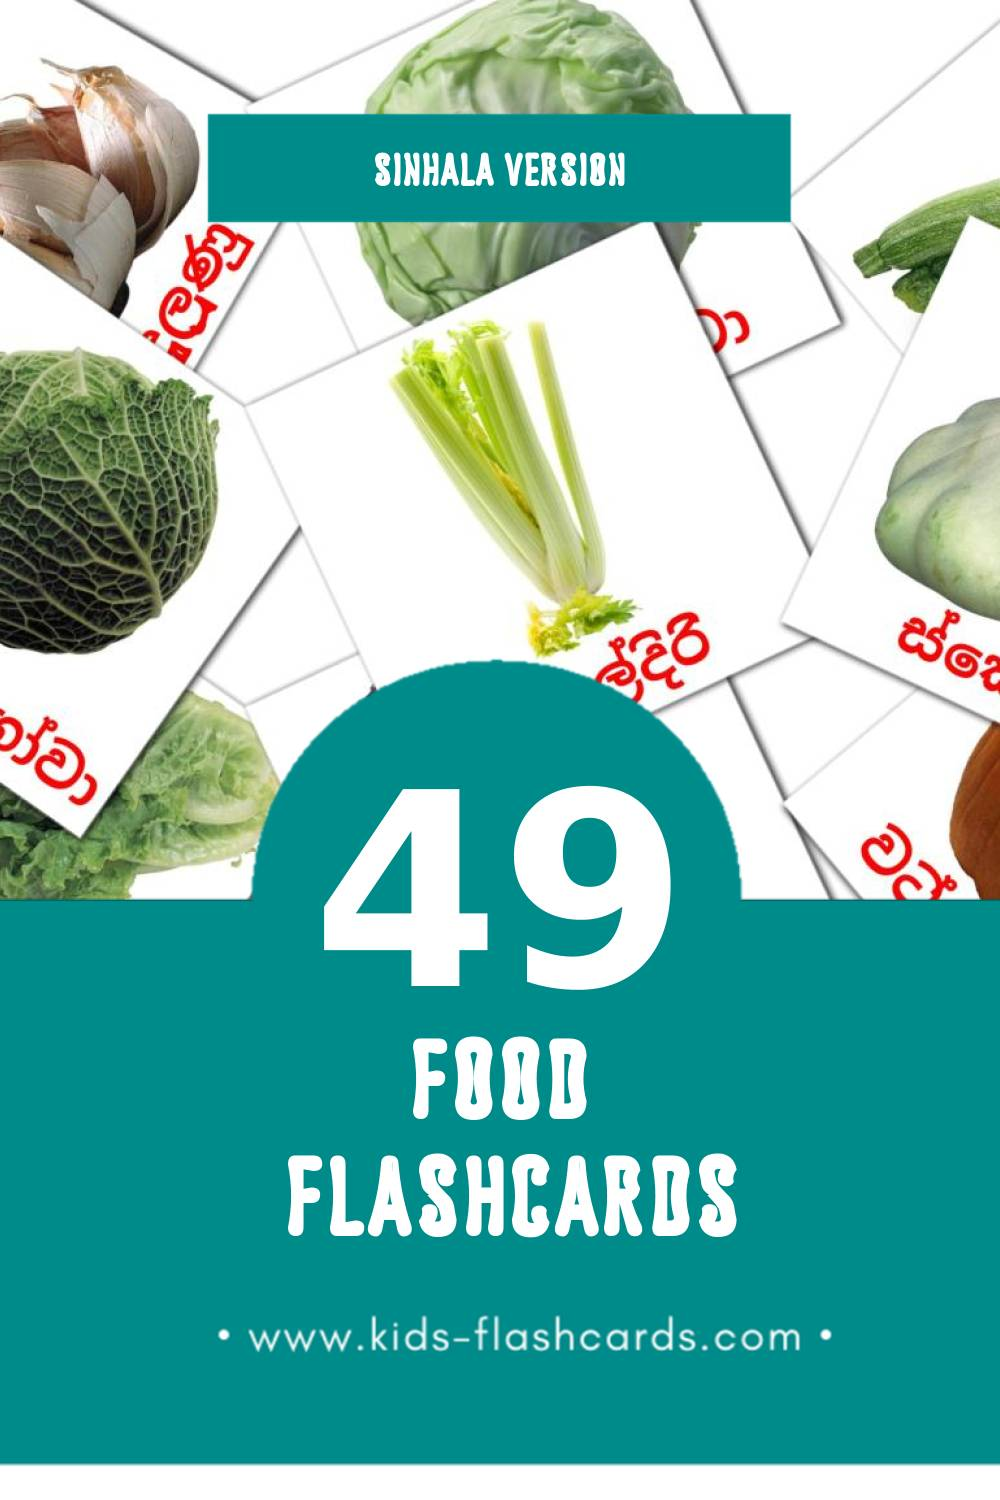 Visual ආහාර Flashcards for Toddlers (49 cards in Sinhala)